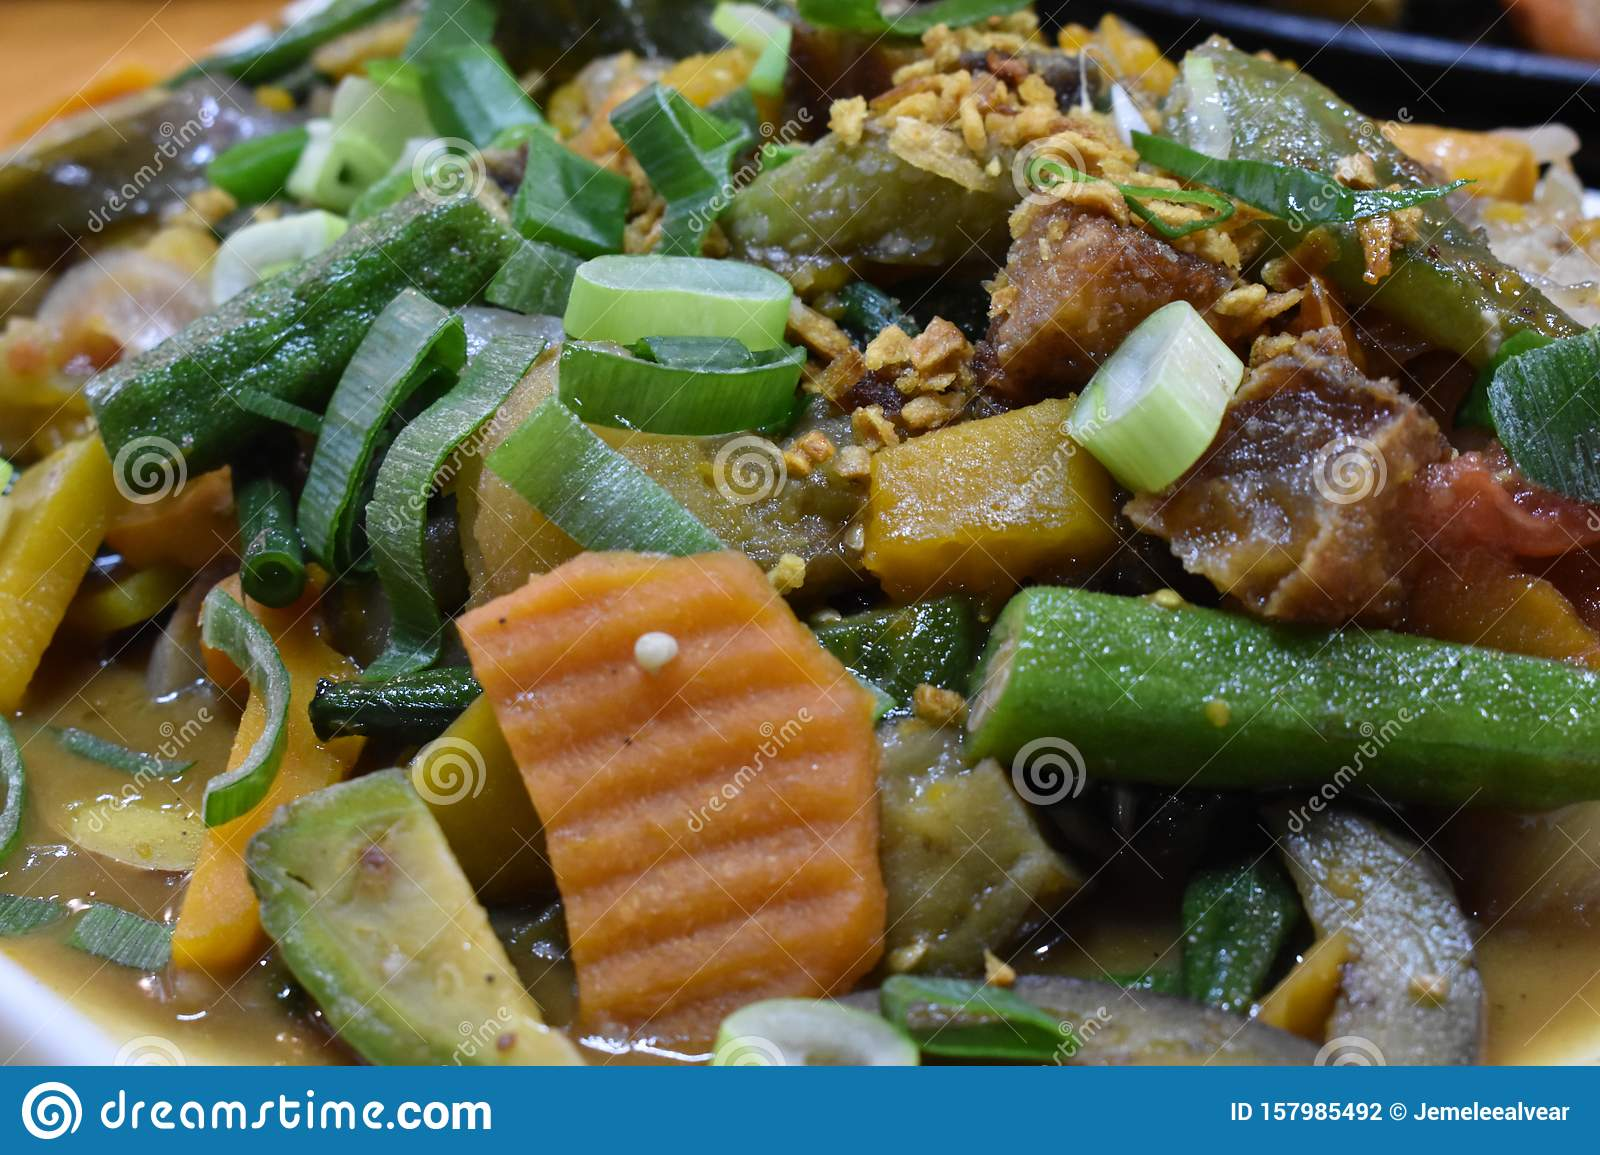 Pinakbet Photos Free Royalty Free Stock Photos From Dreamstime